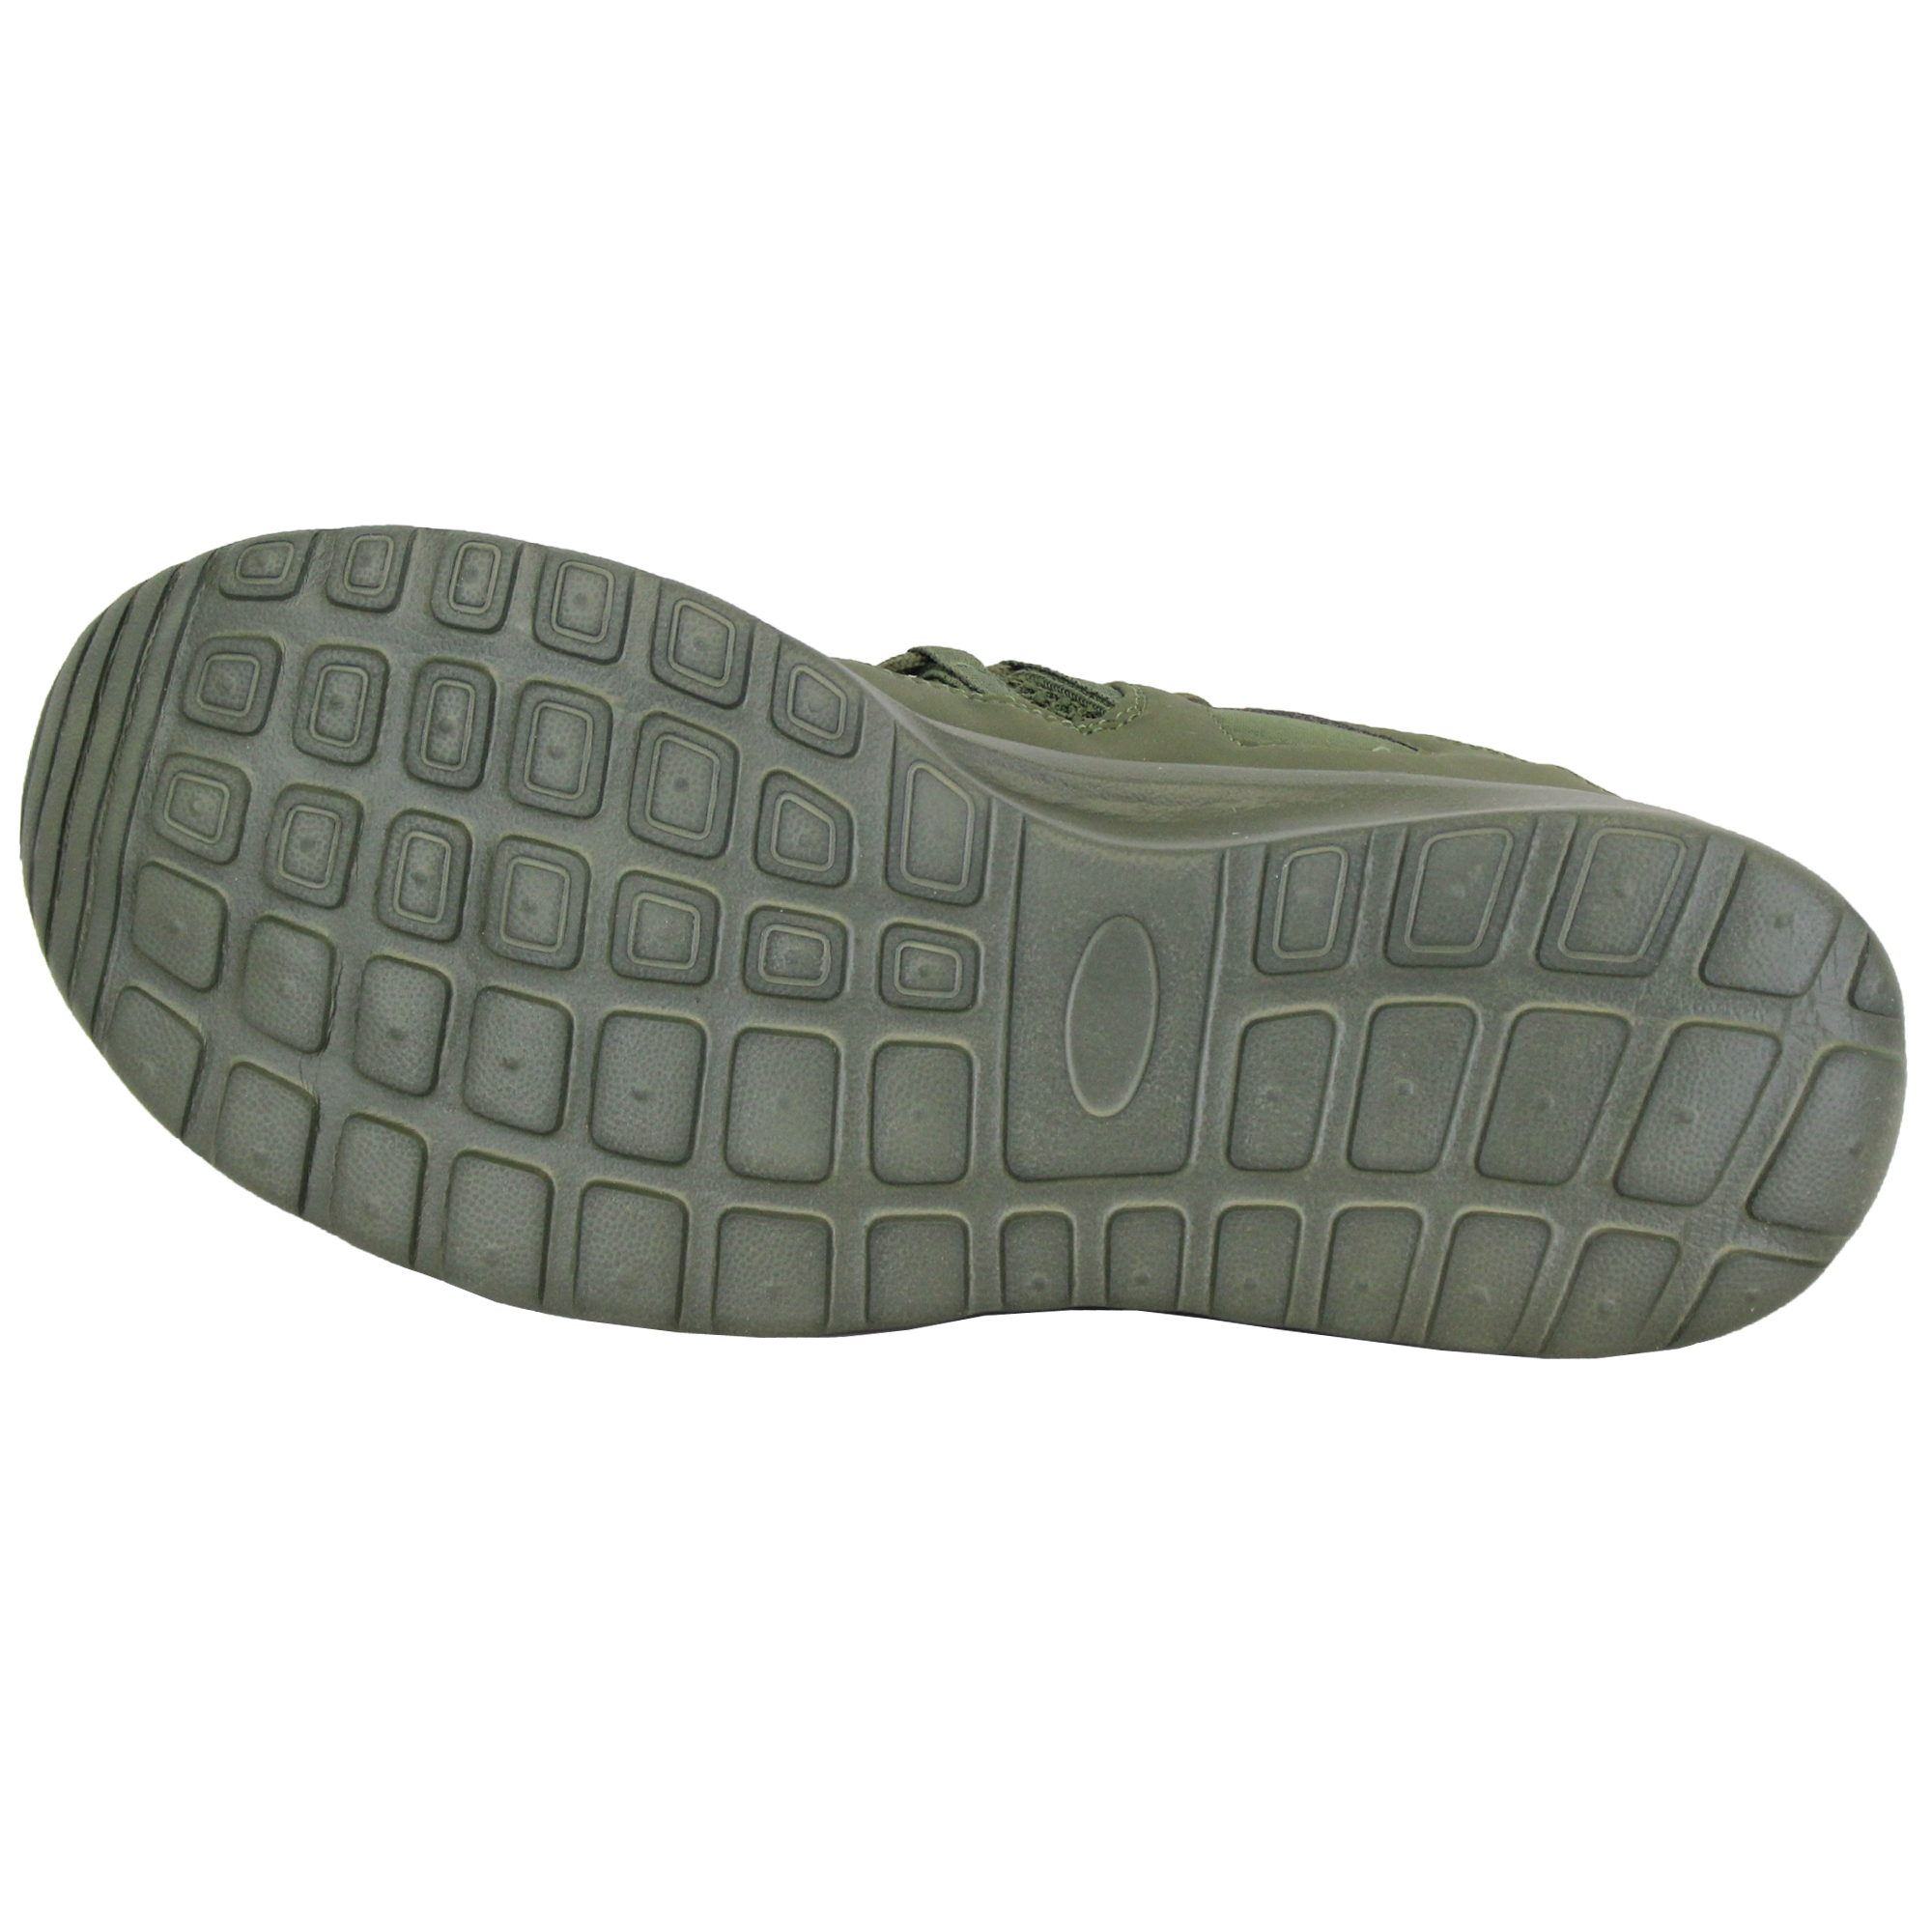 Mens-Trainers-Crosshatch-Running-Speed-Lace-Up-Sneakers-Sports-Gym-Casual-Shoes thumbnail 8